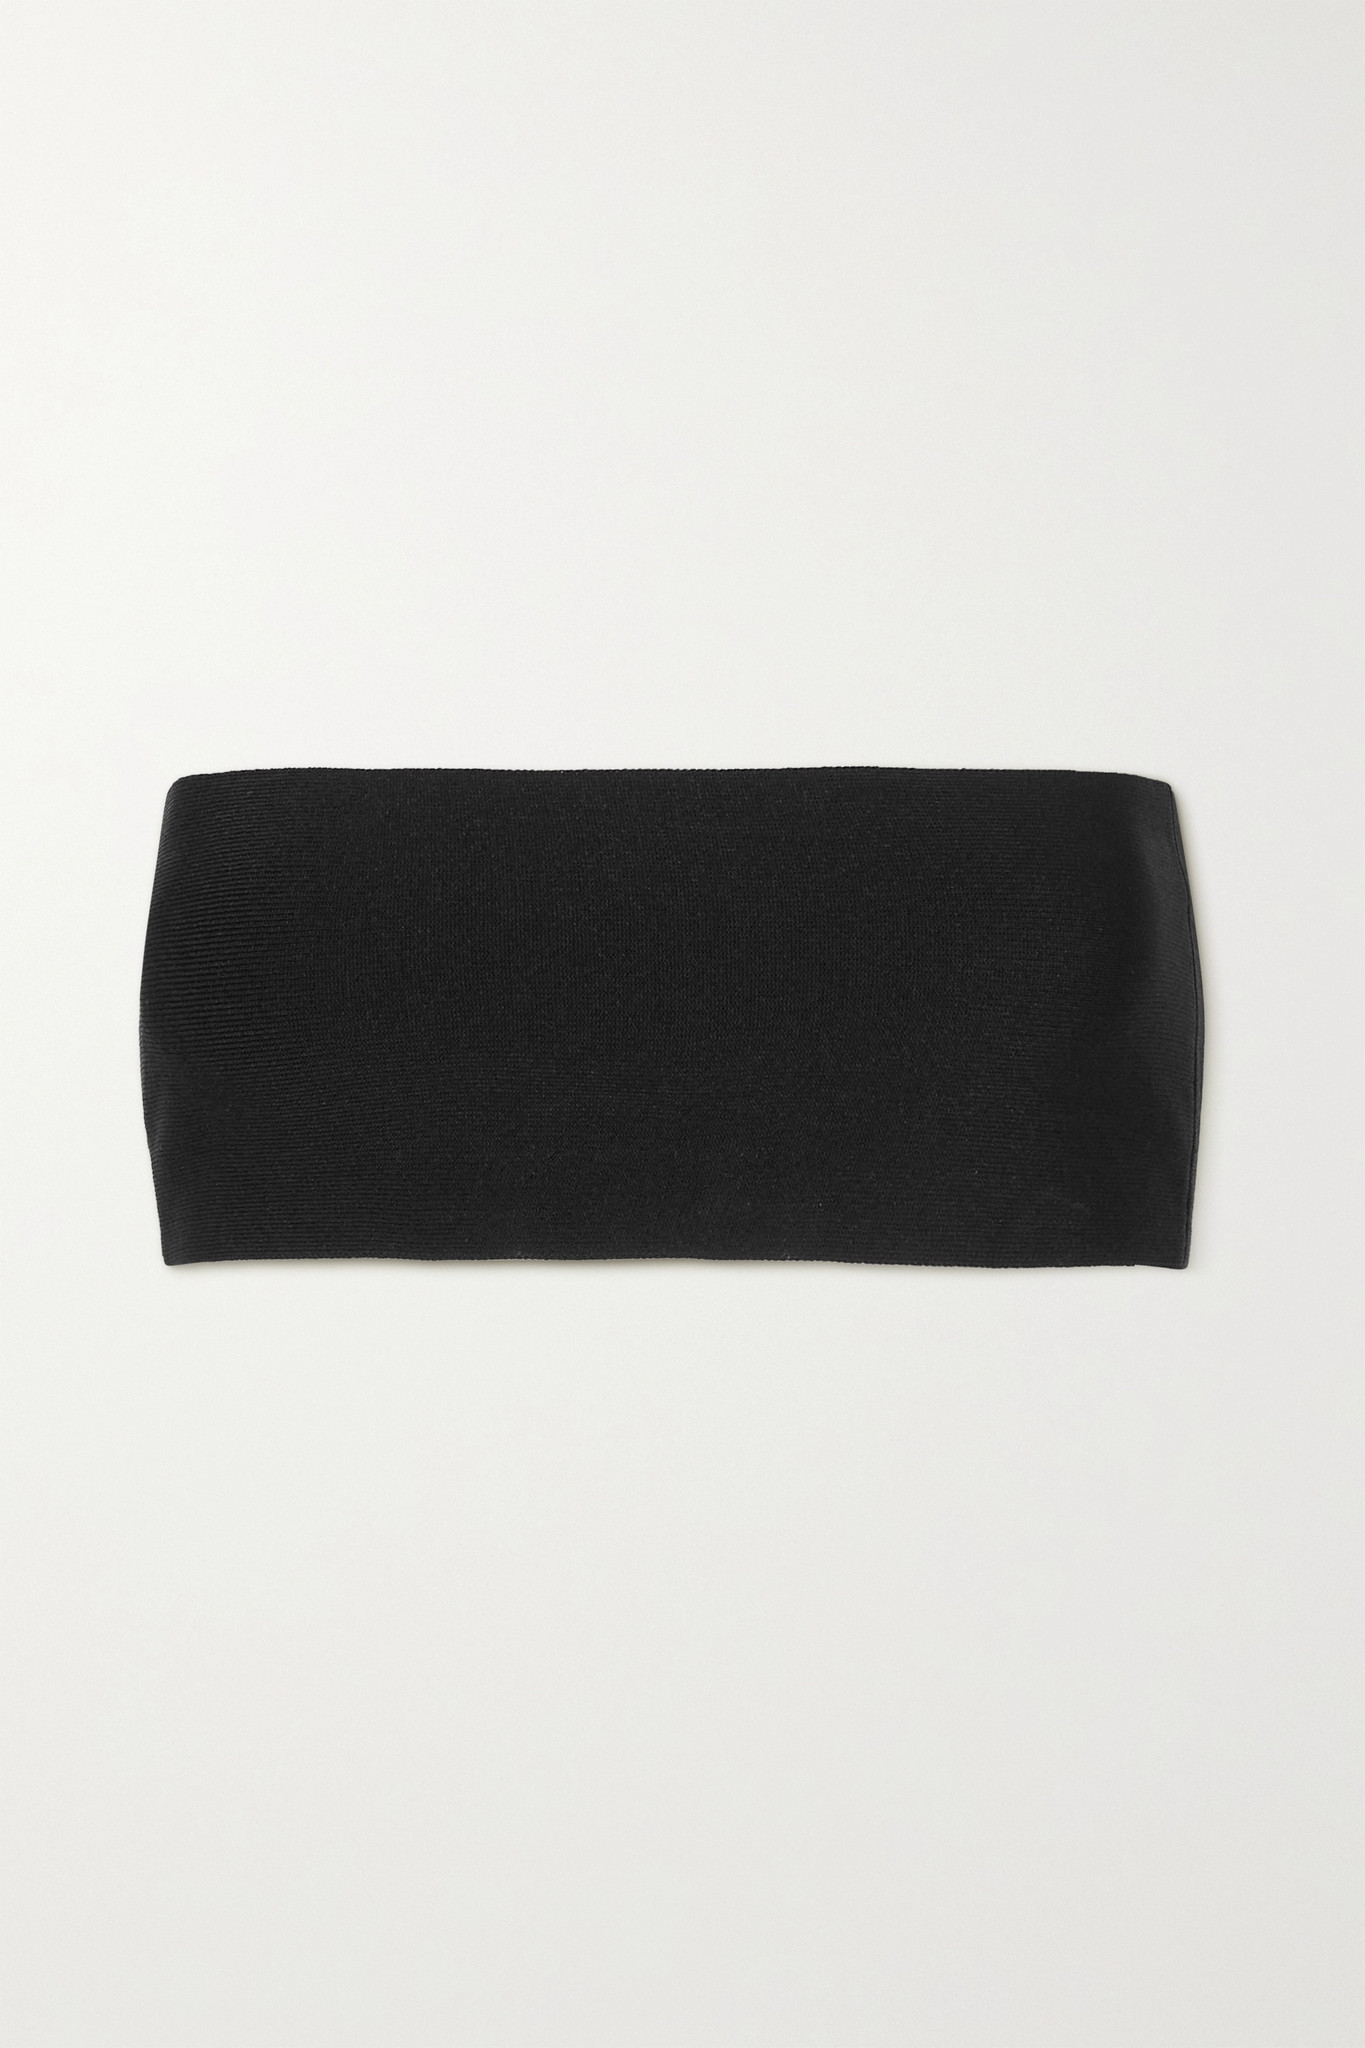 STELLA MCCARTNEY - Strapless Knitted Top - Black - x small